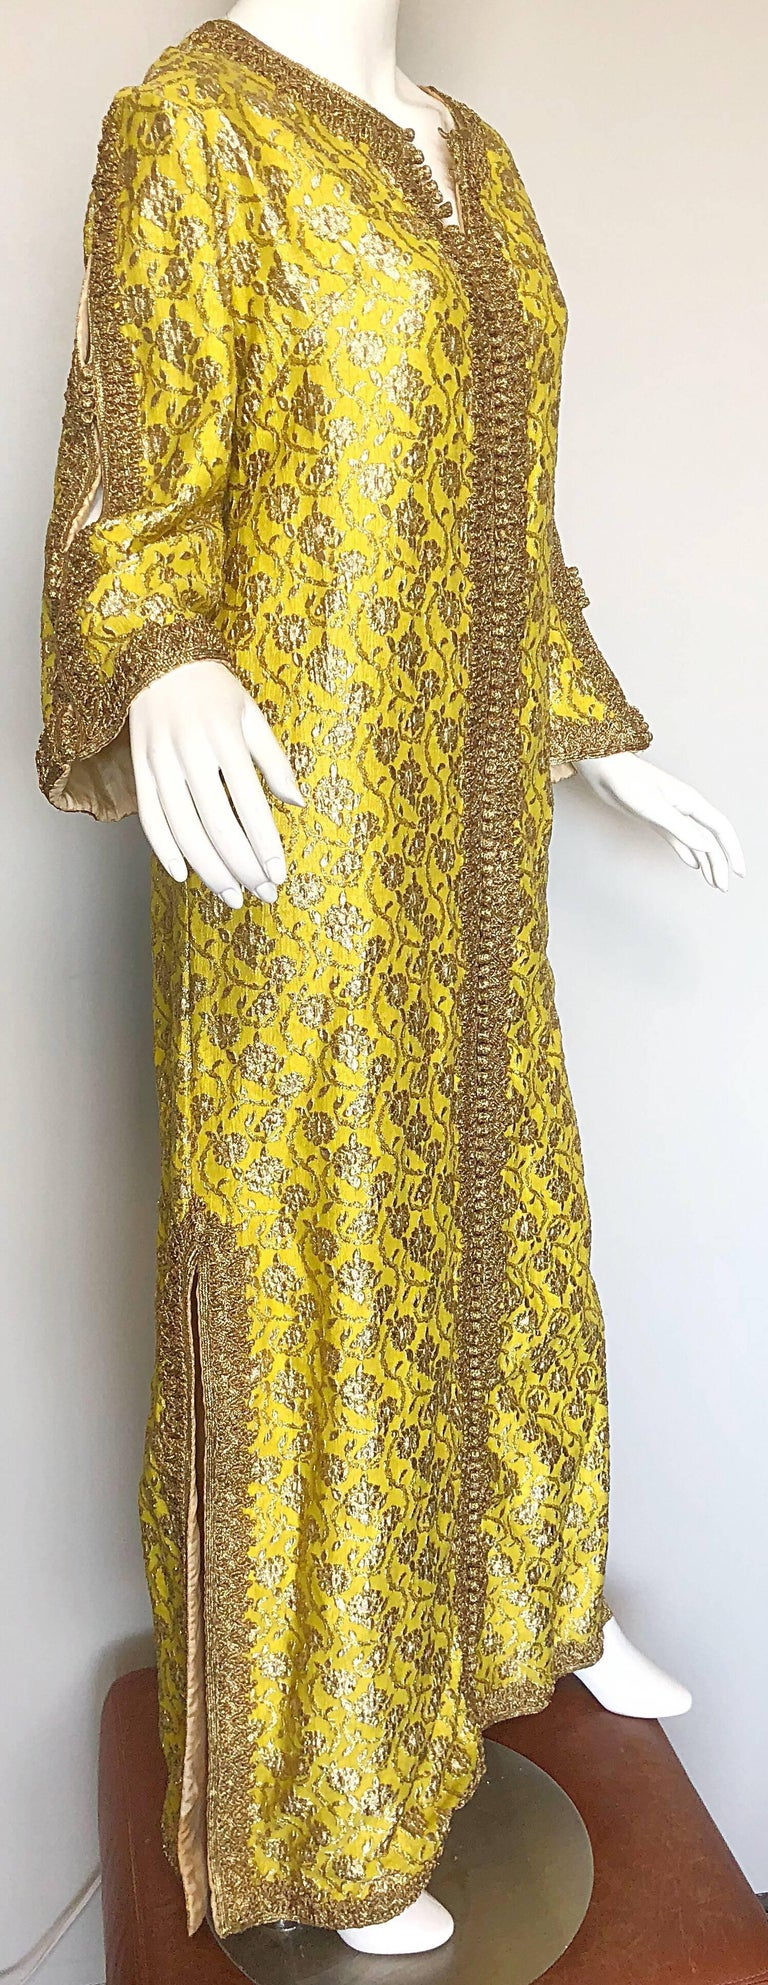 Amazing 1960s Moroccan Couture Silk Brocade Yellow + Gold Caftan 60s Maxi Dress For Sale 2